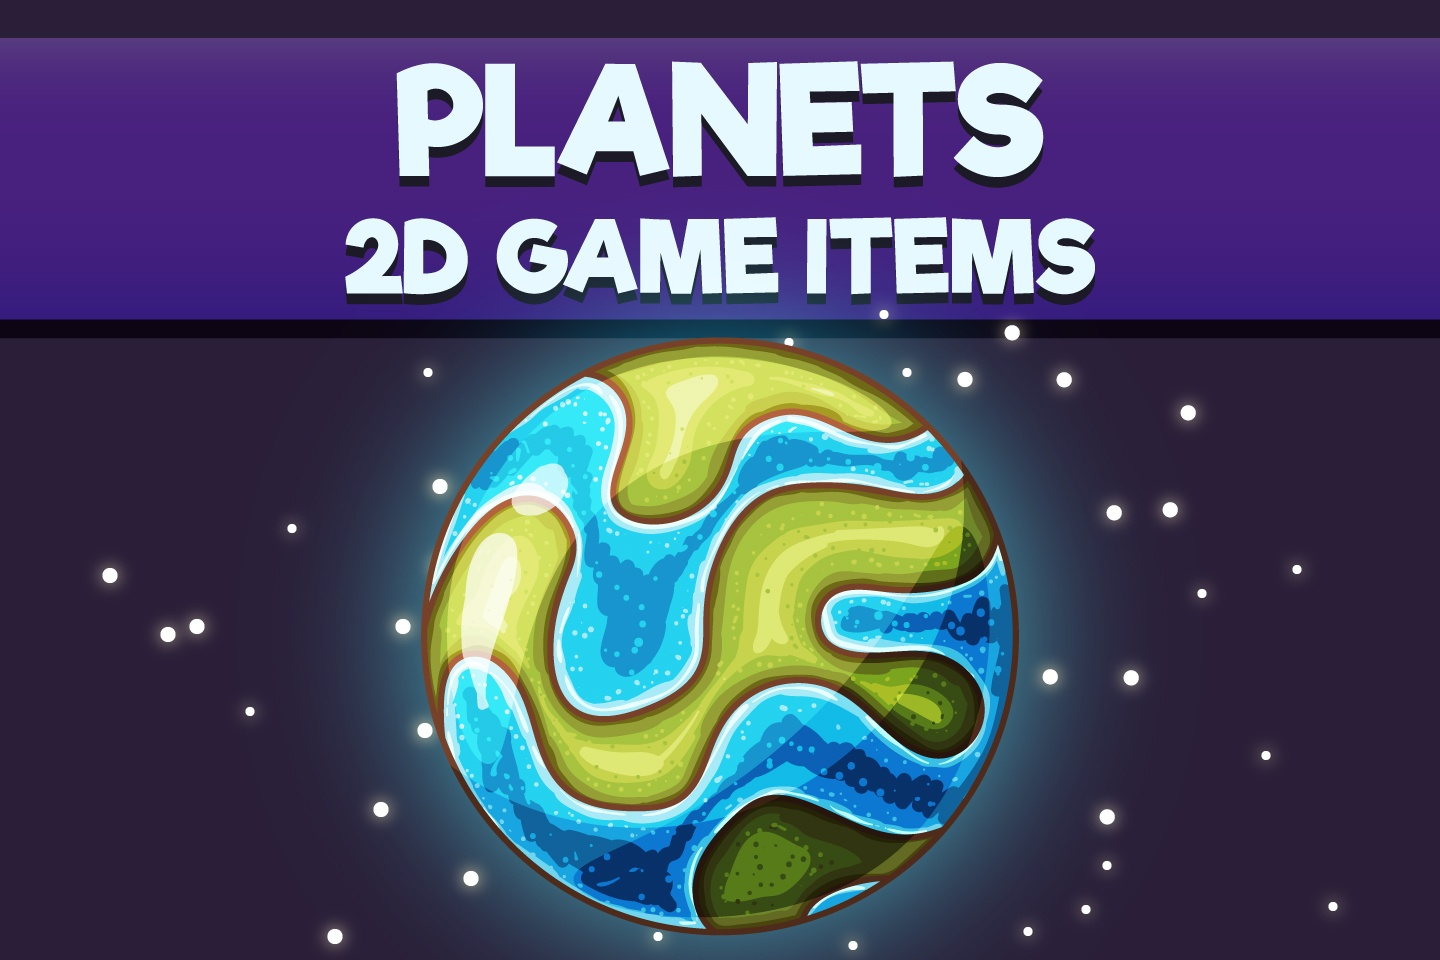 Planets 2D Game Objects